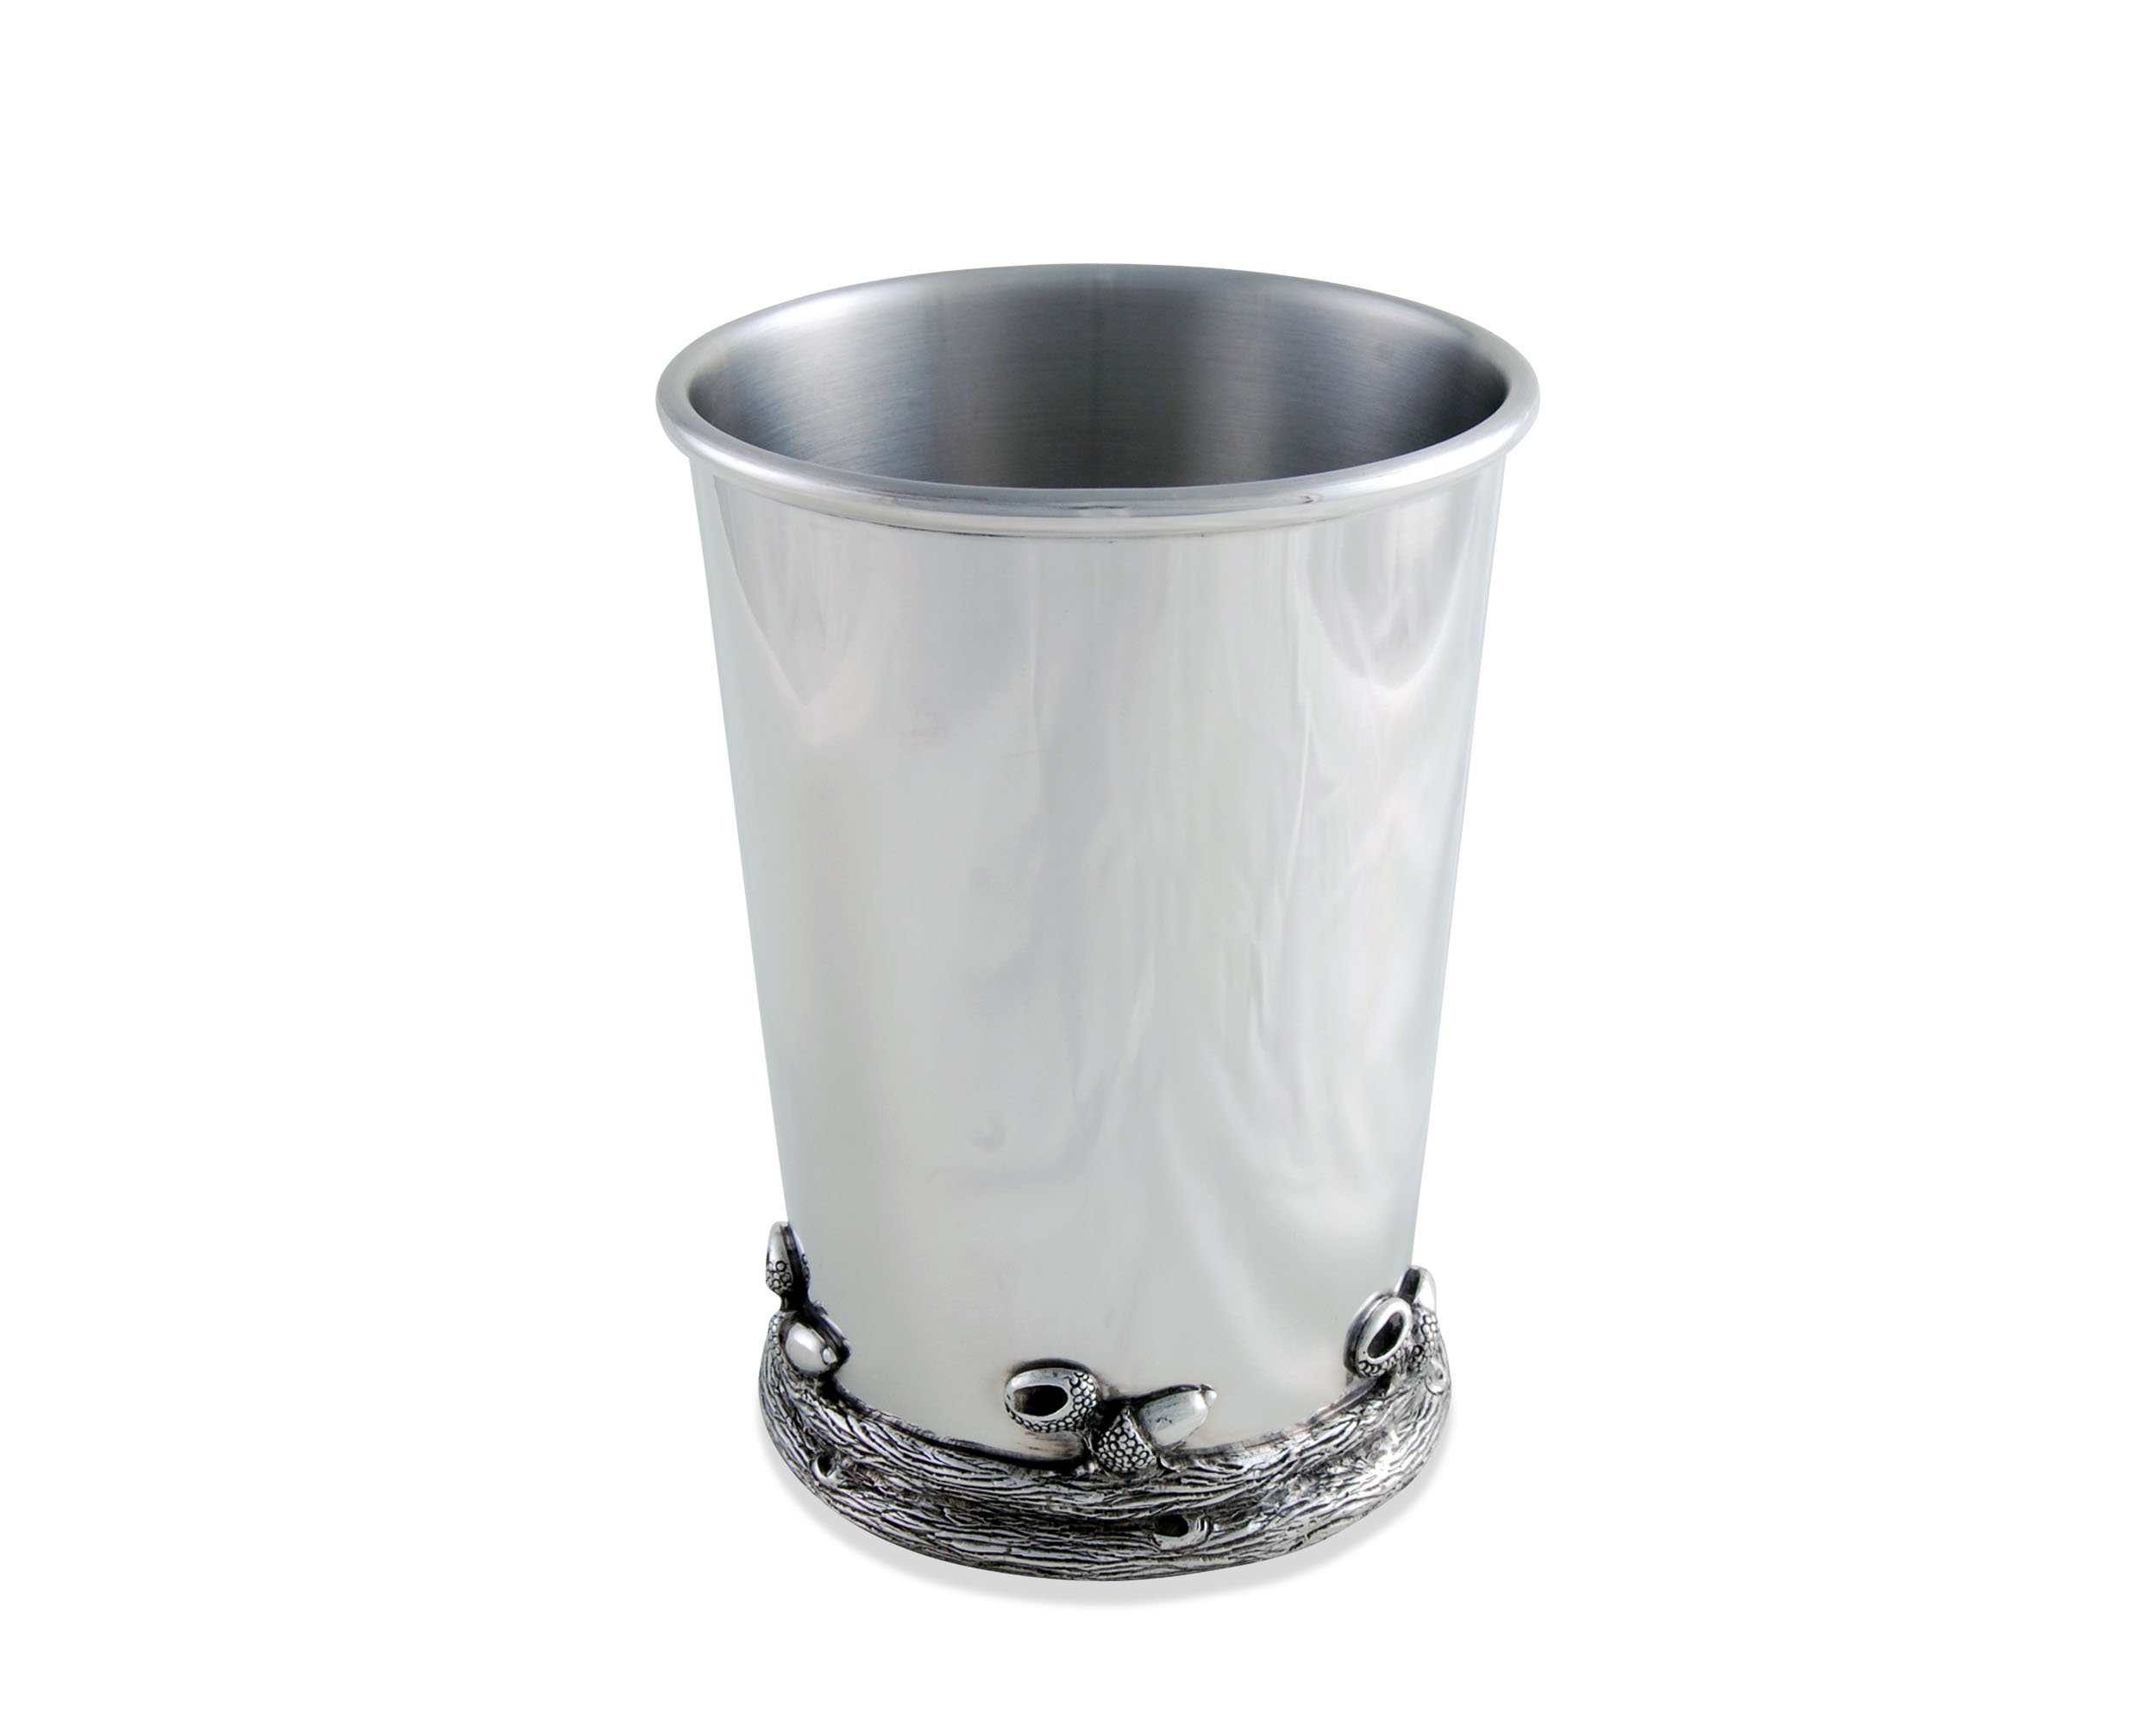 Vagabond House Pewter Julep Cup with Acorns and Oak Leaves